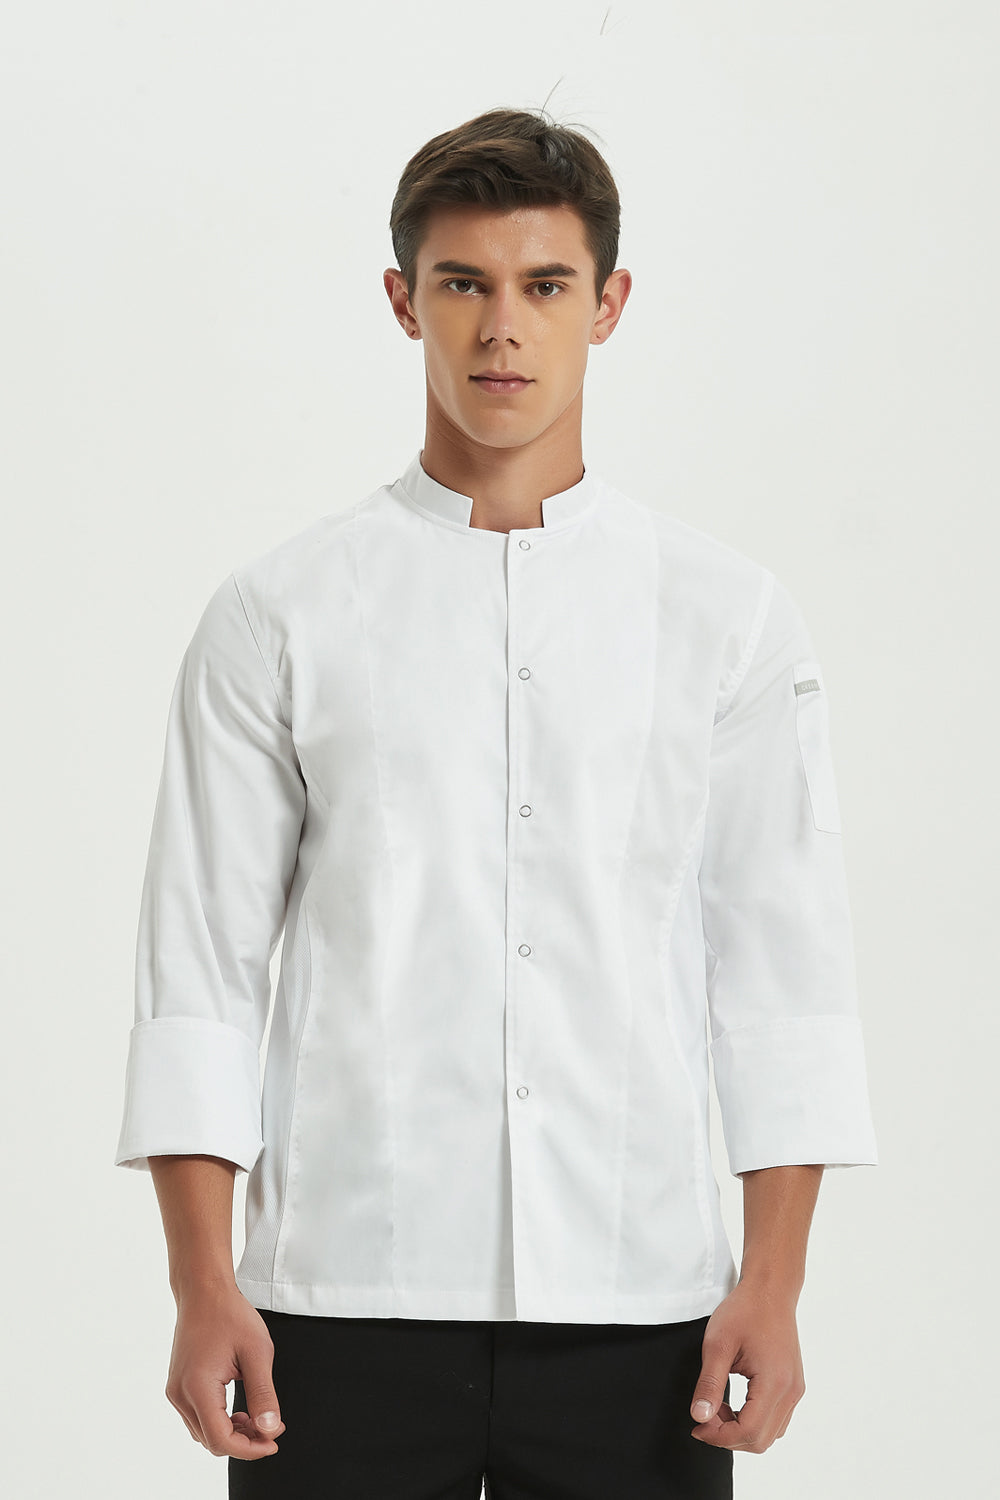 Mint White Chef Jacket with Dri-fit